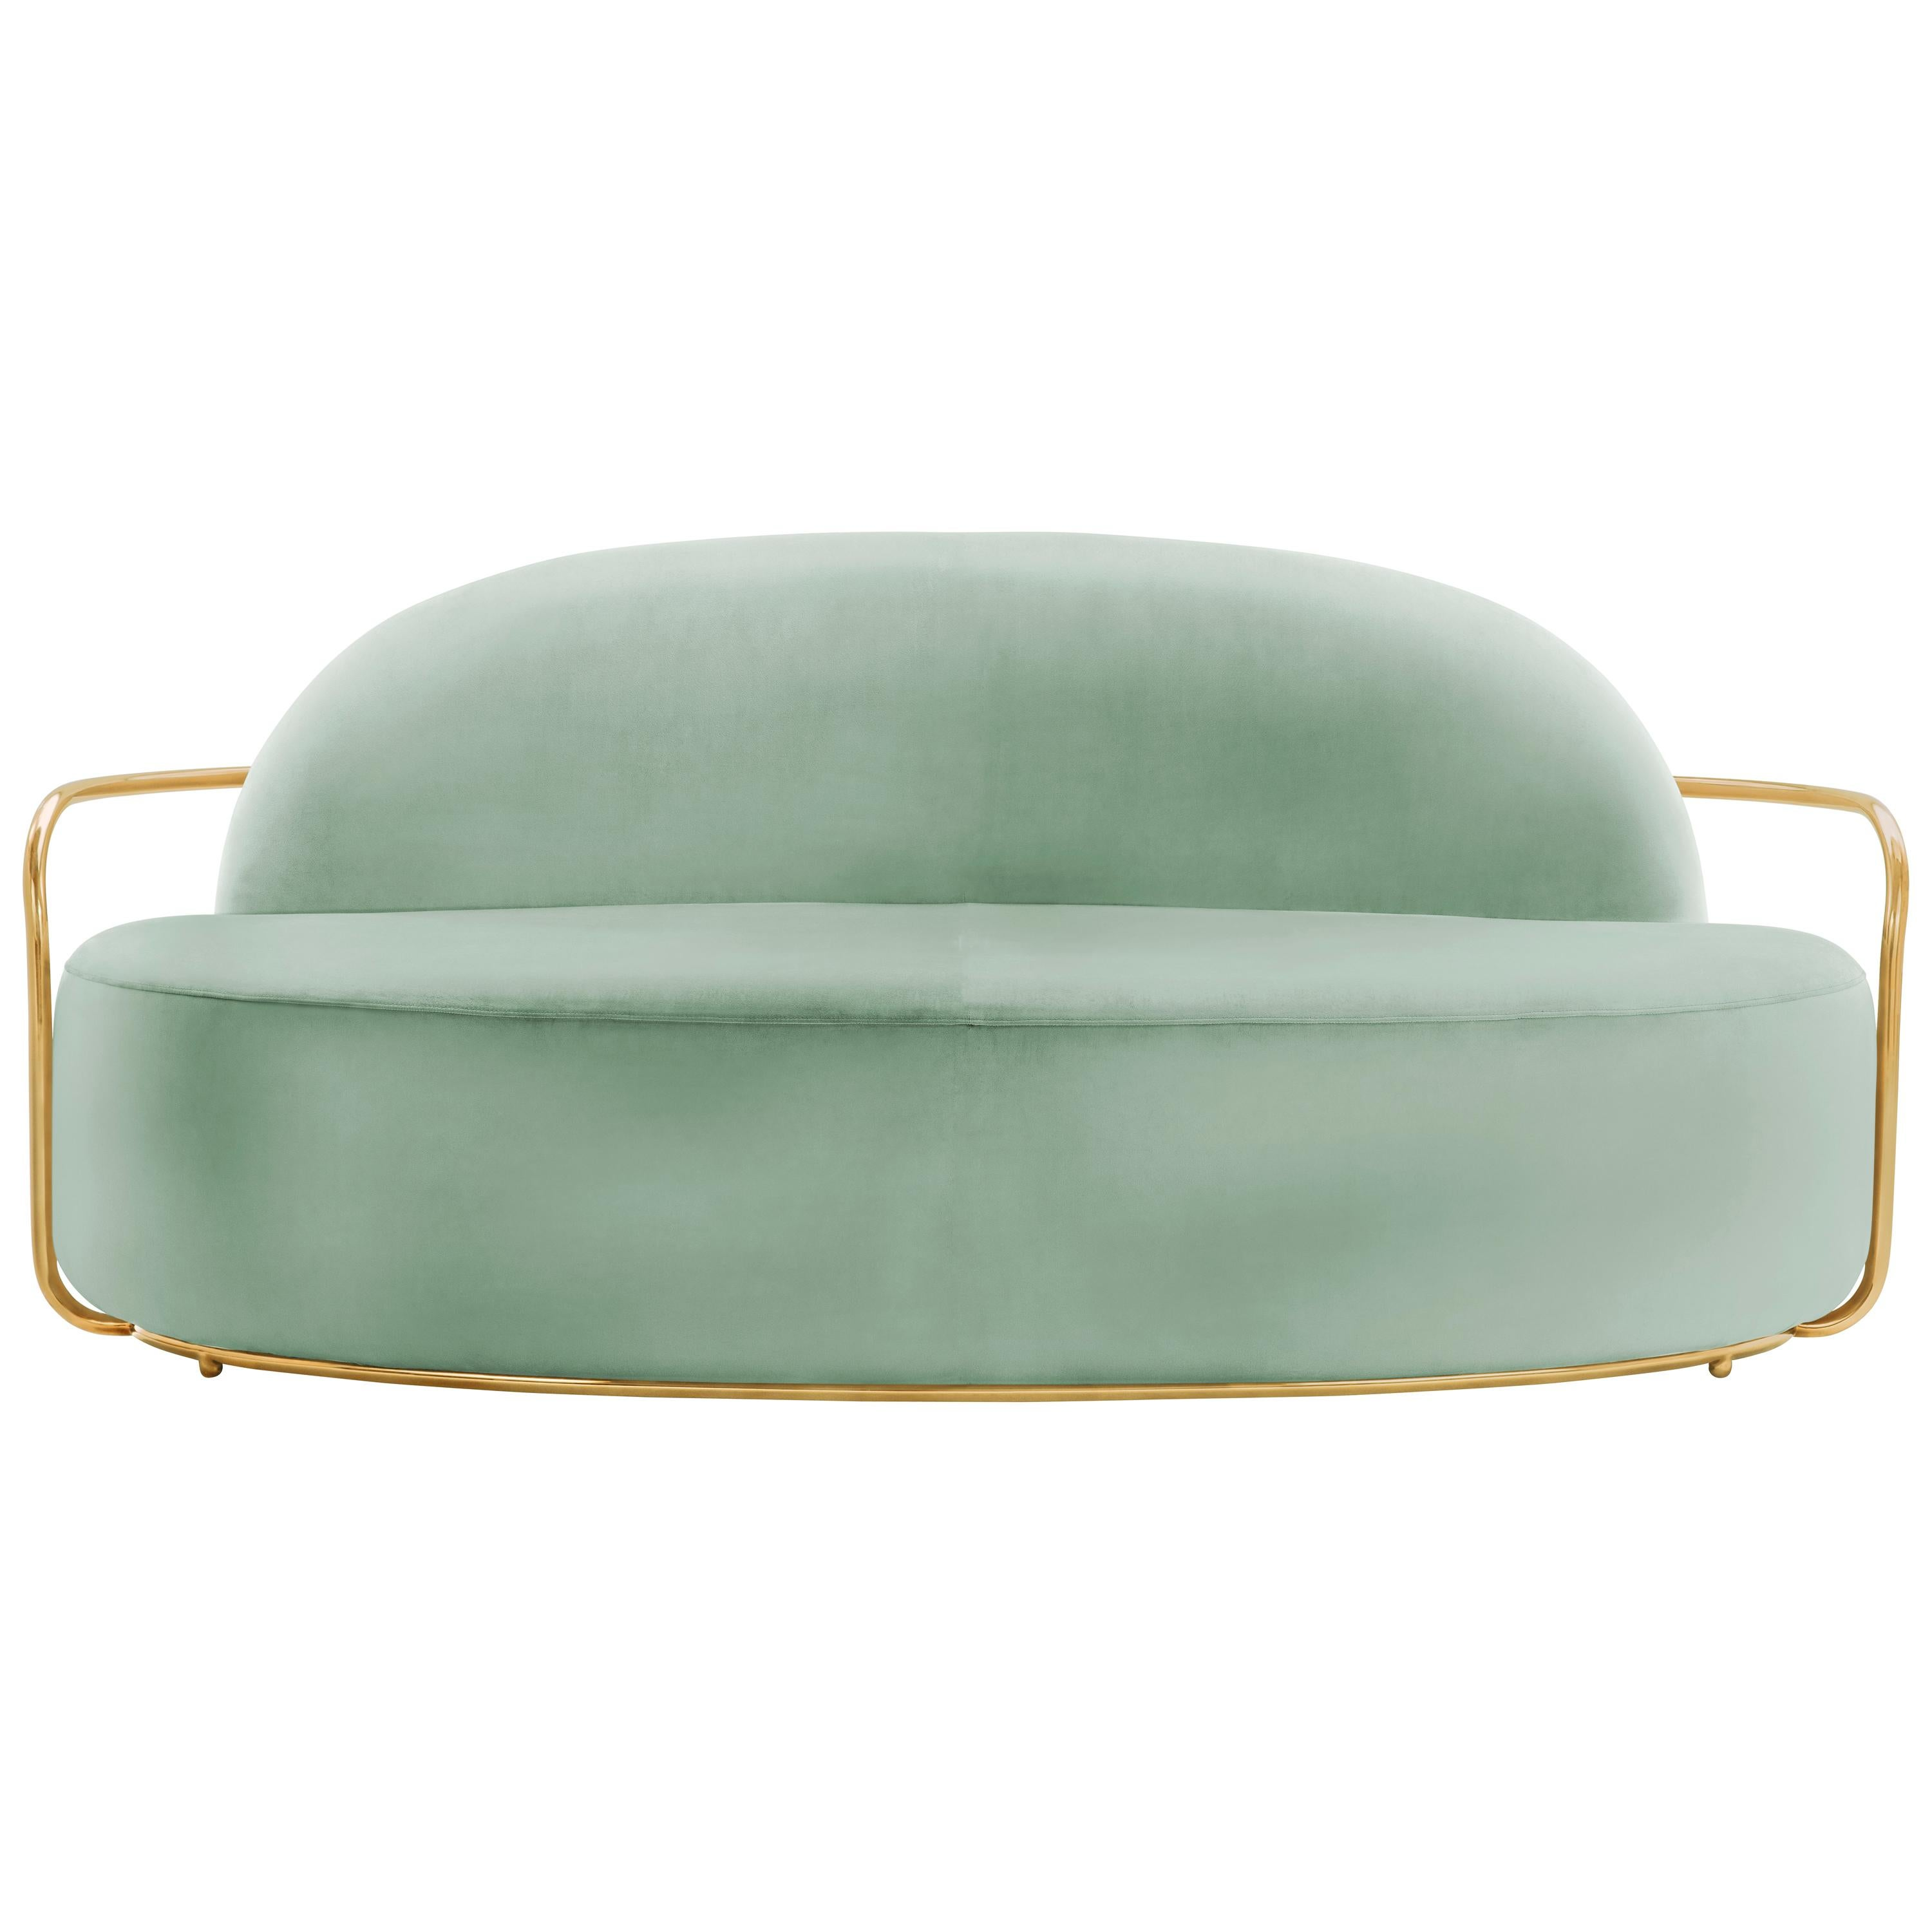 Orion 3 Seat Sofa with Plush Mint Green Velvet and Gold Arms by Nika Zupanc